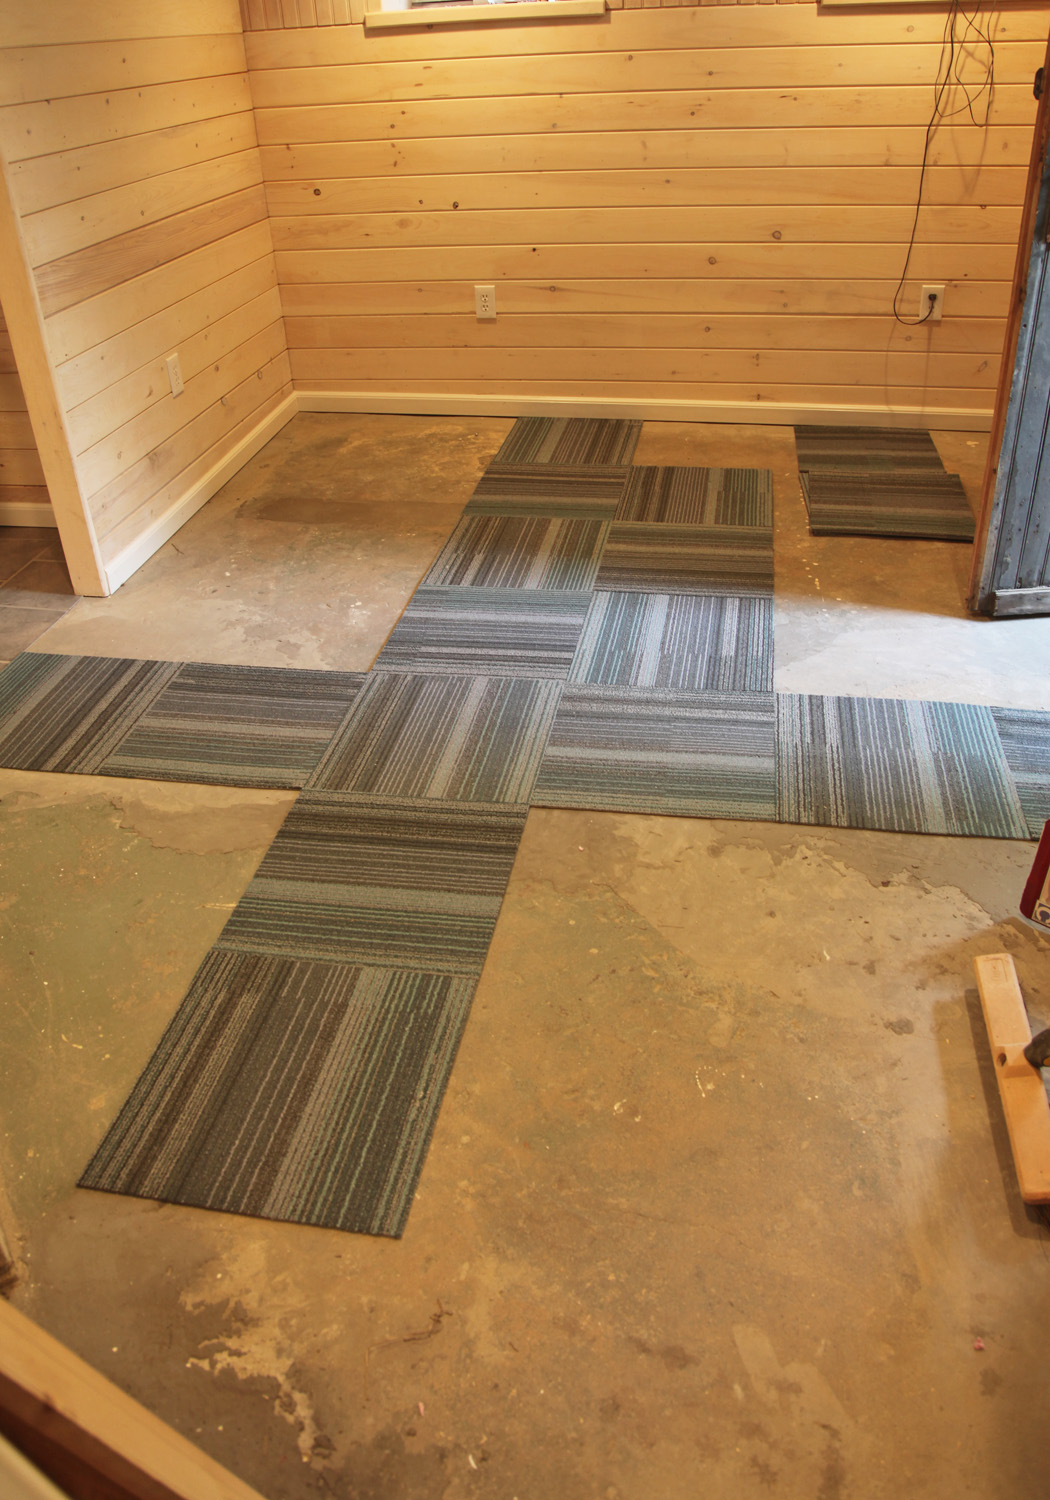 carpet tile installation patterns. laying out the carpet tile pattern installation patterns e